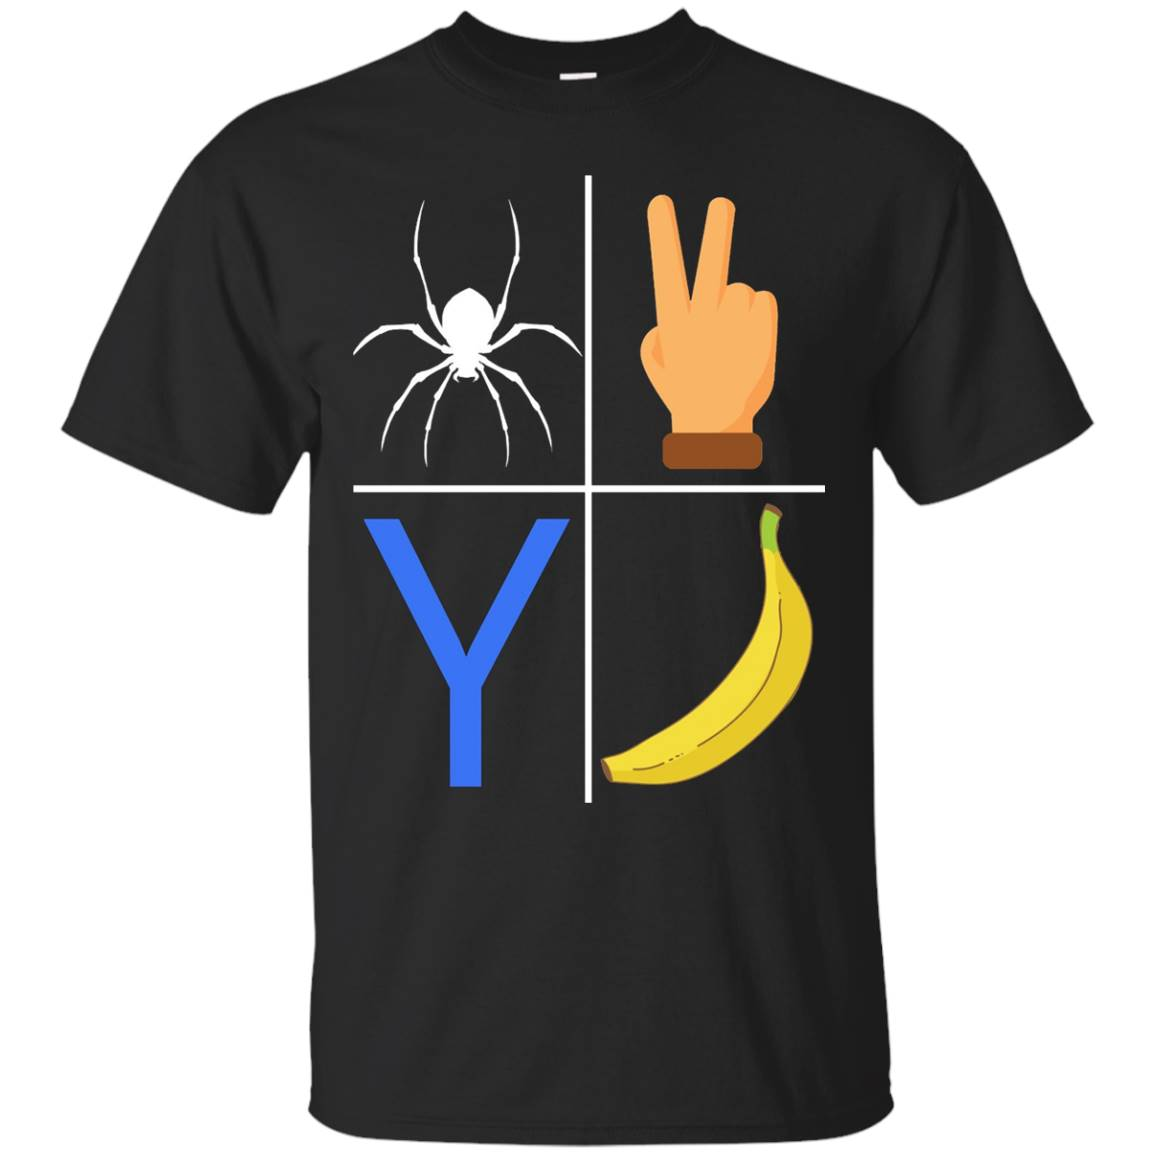 Spider 2 y banana shirt – Great Spider 2 y banana t shirt